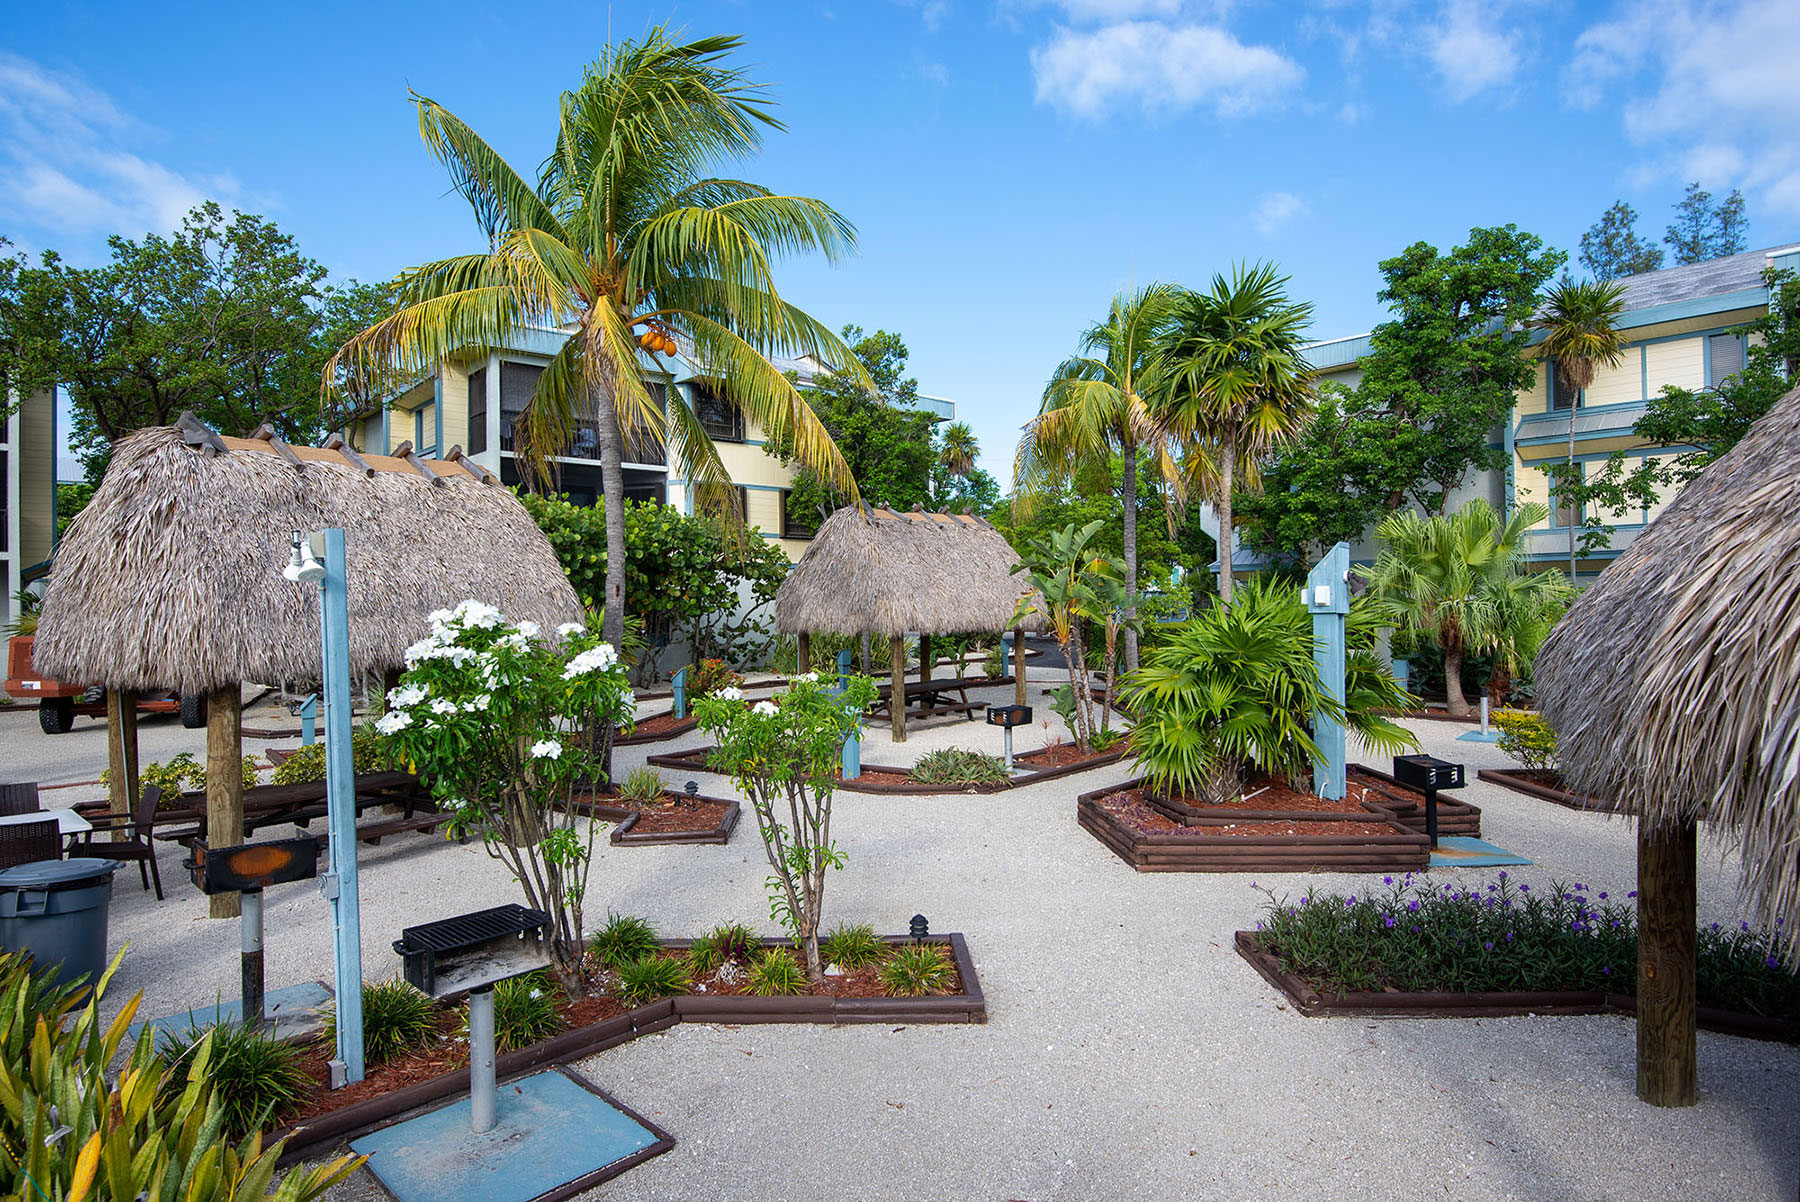 Marathon Key Beach Club grill and tiki huts